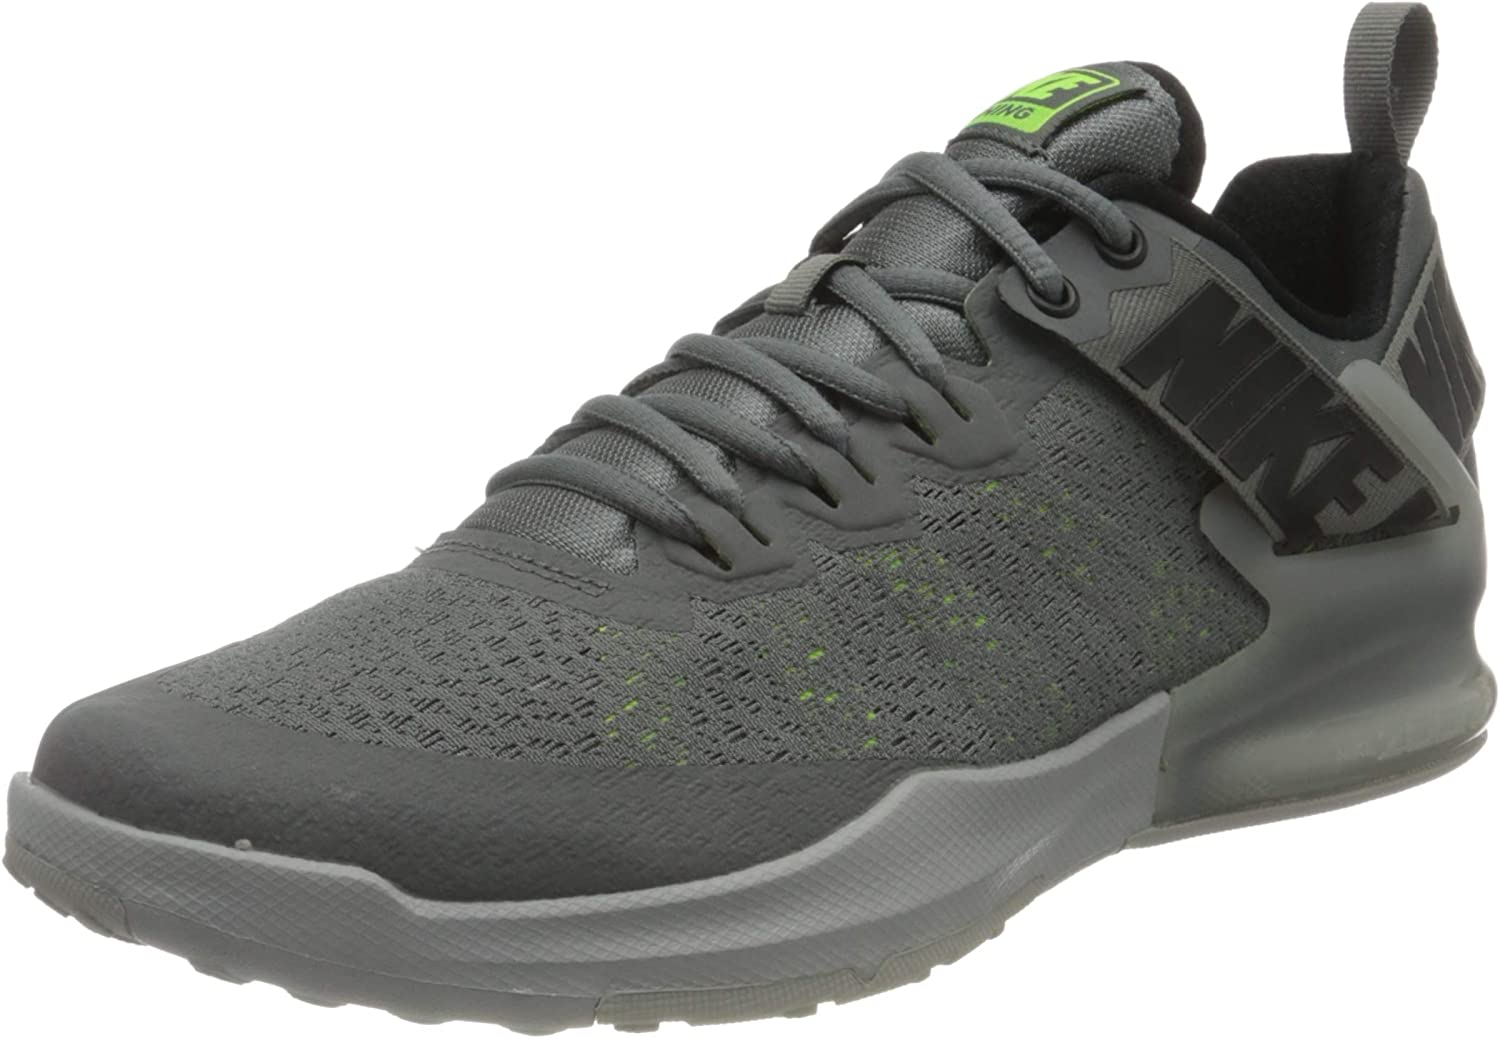 nike men's zoom domination tr 2 training shoes